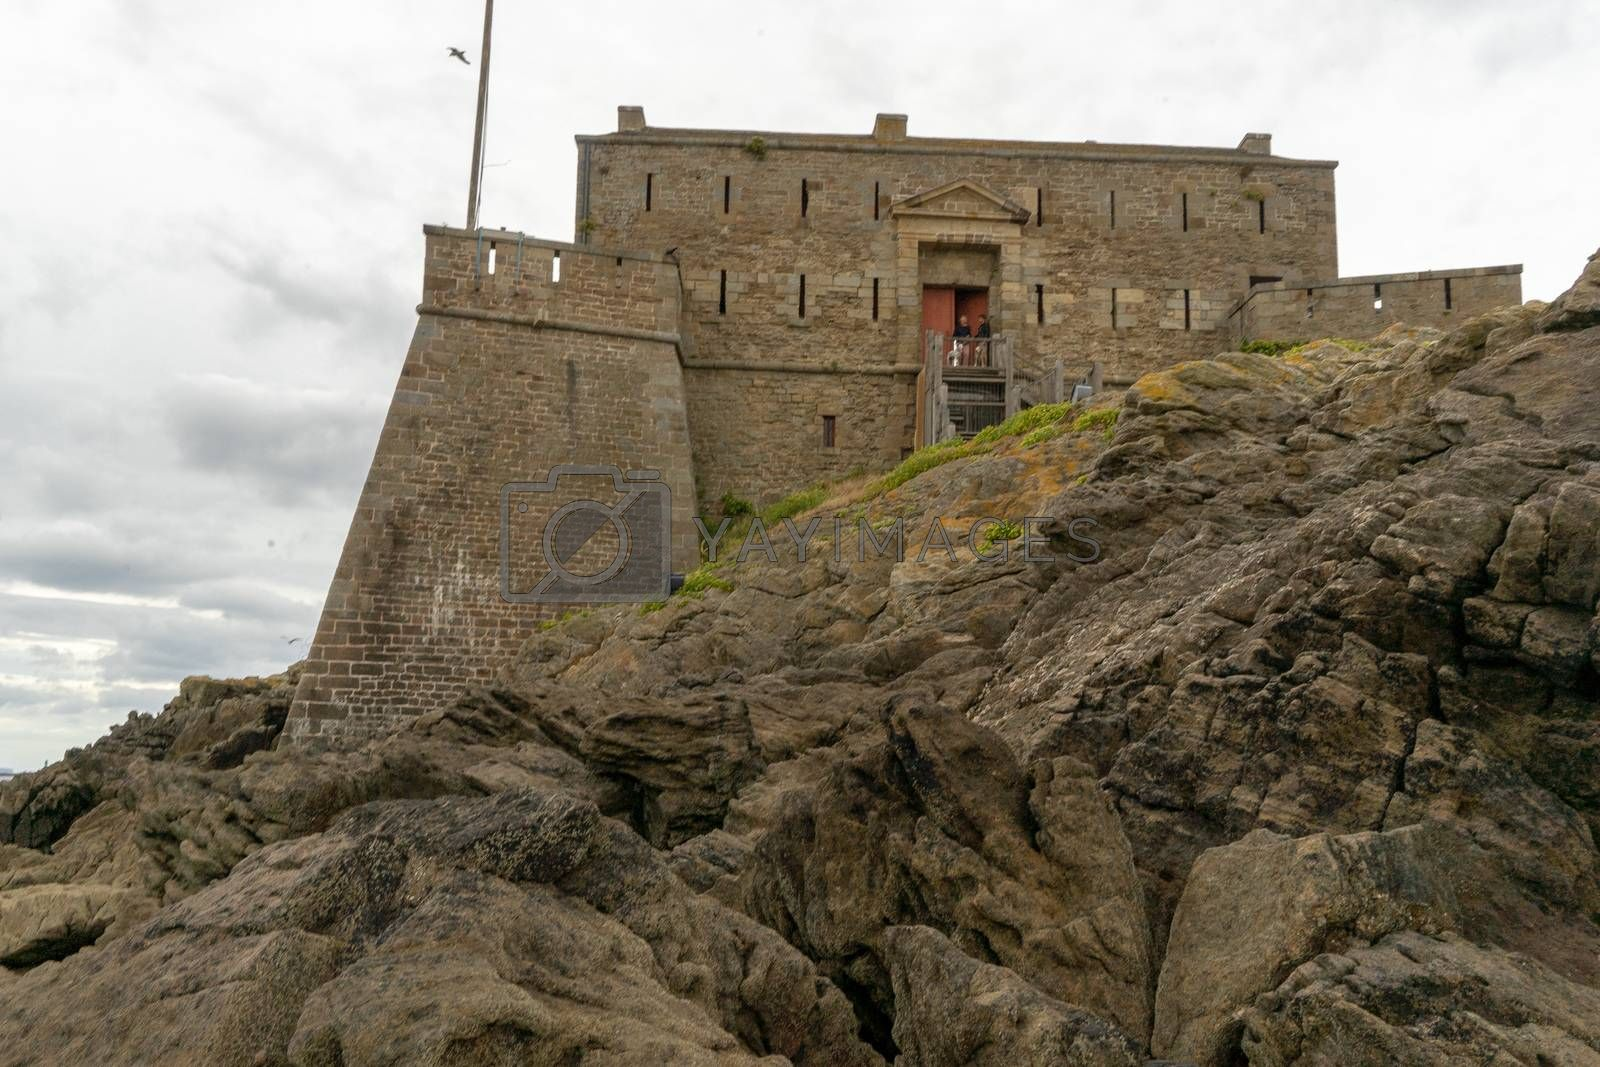 San Malo tourist attraction castle fort and water seascape